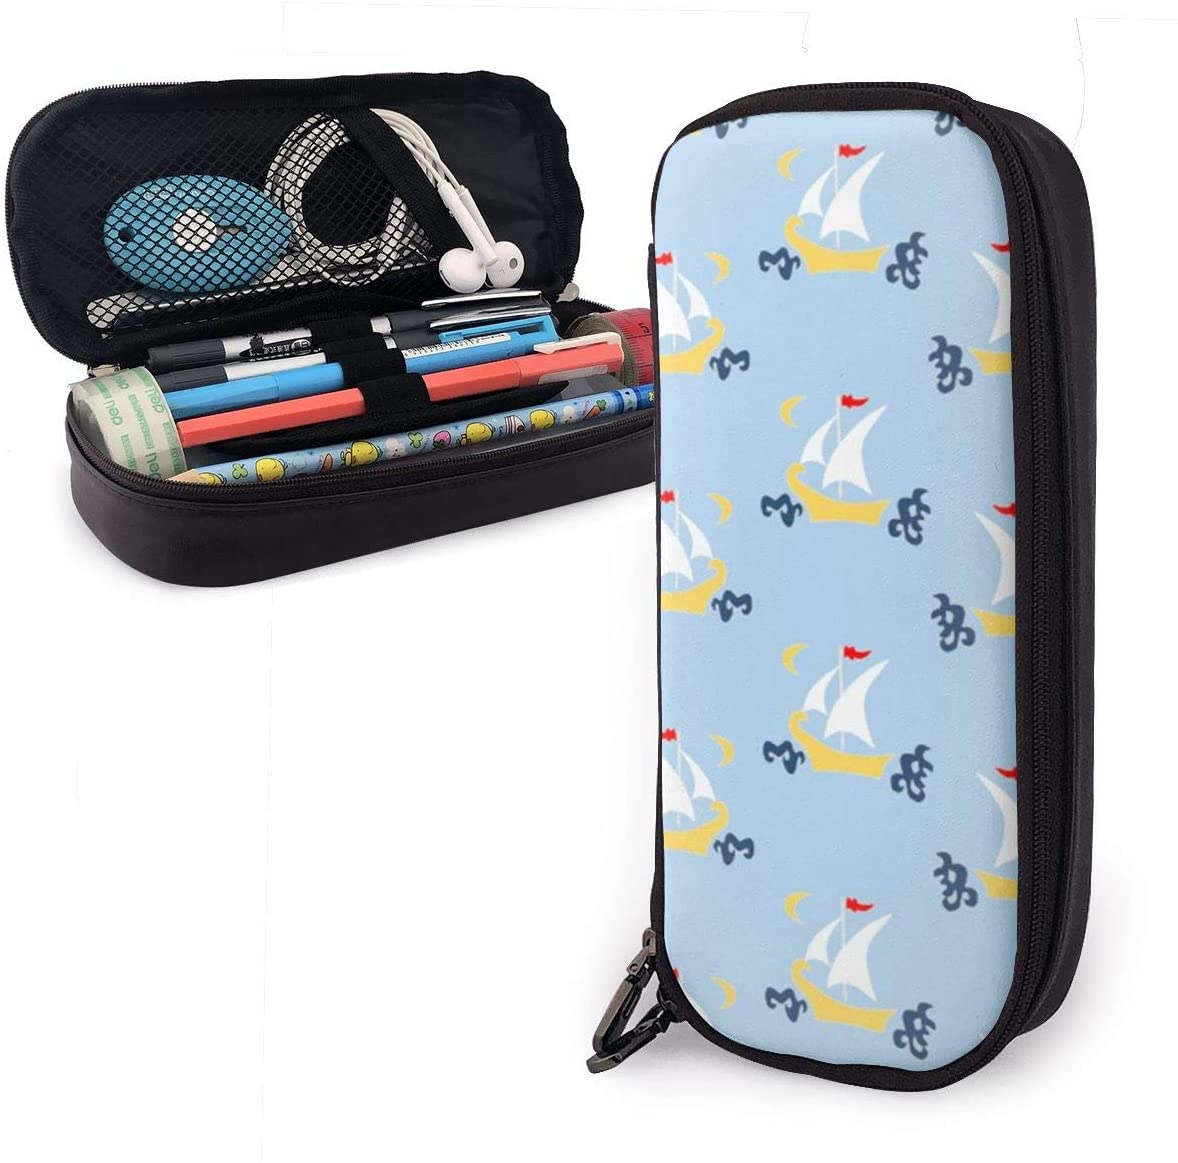 NiYoung Fashion Big Capacity Pencil Pen Case Stationery Box Desk Organizer with Zipper Storage Pouch Holder for School & Office Supplies - Sailboats Blue